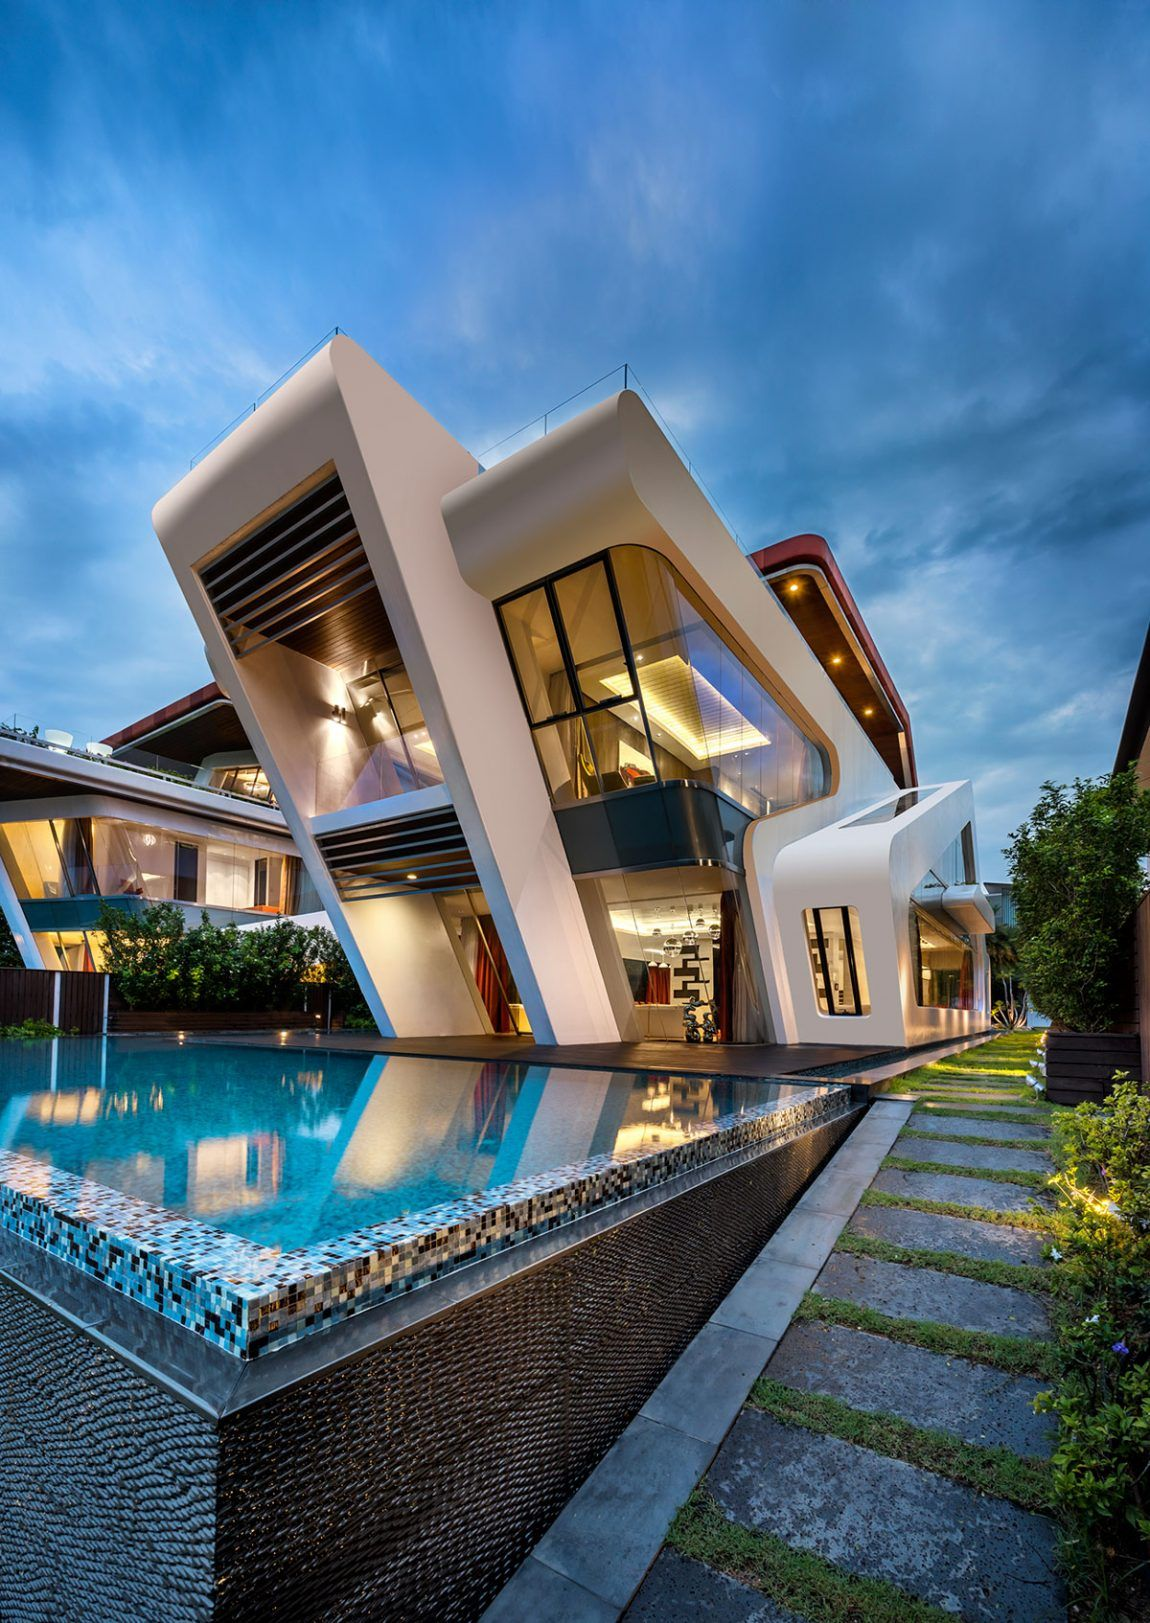 Mercurio design lab create a modern villa in singapore for Modern villa architecture